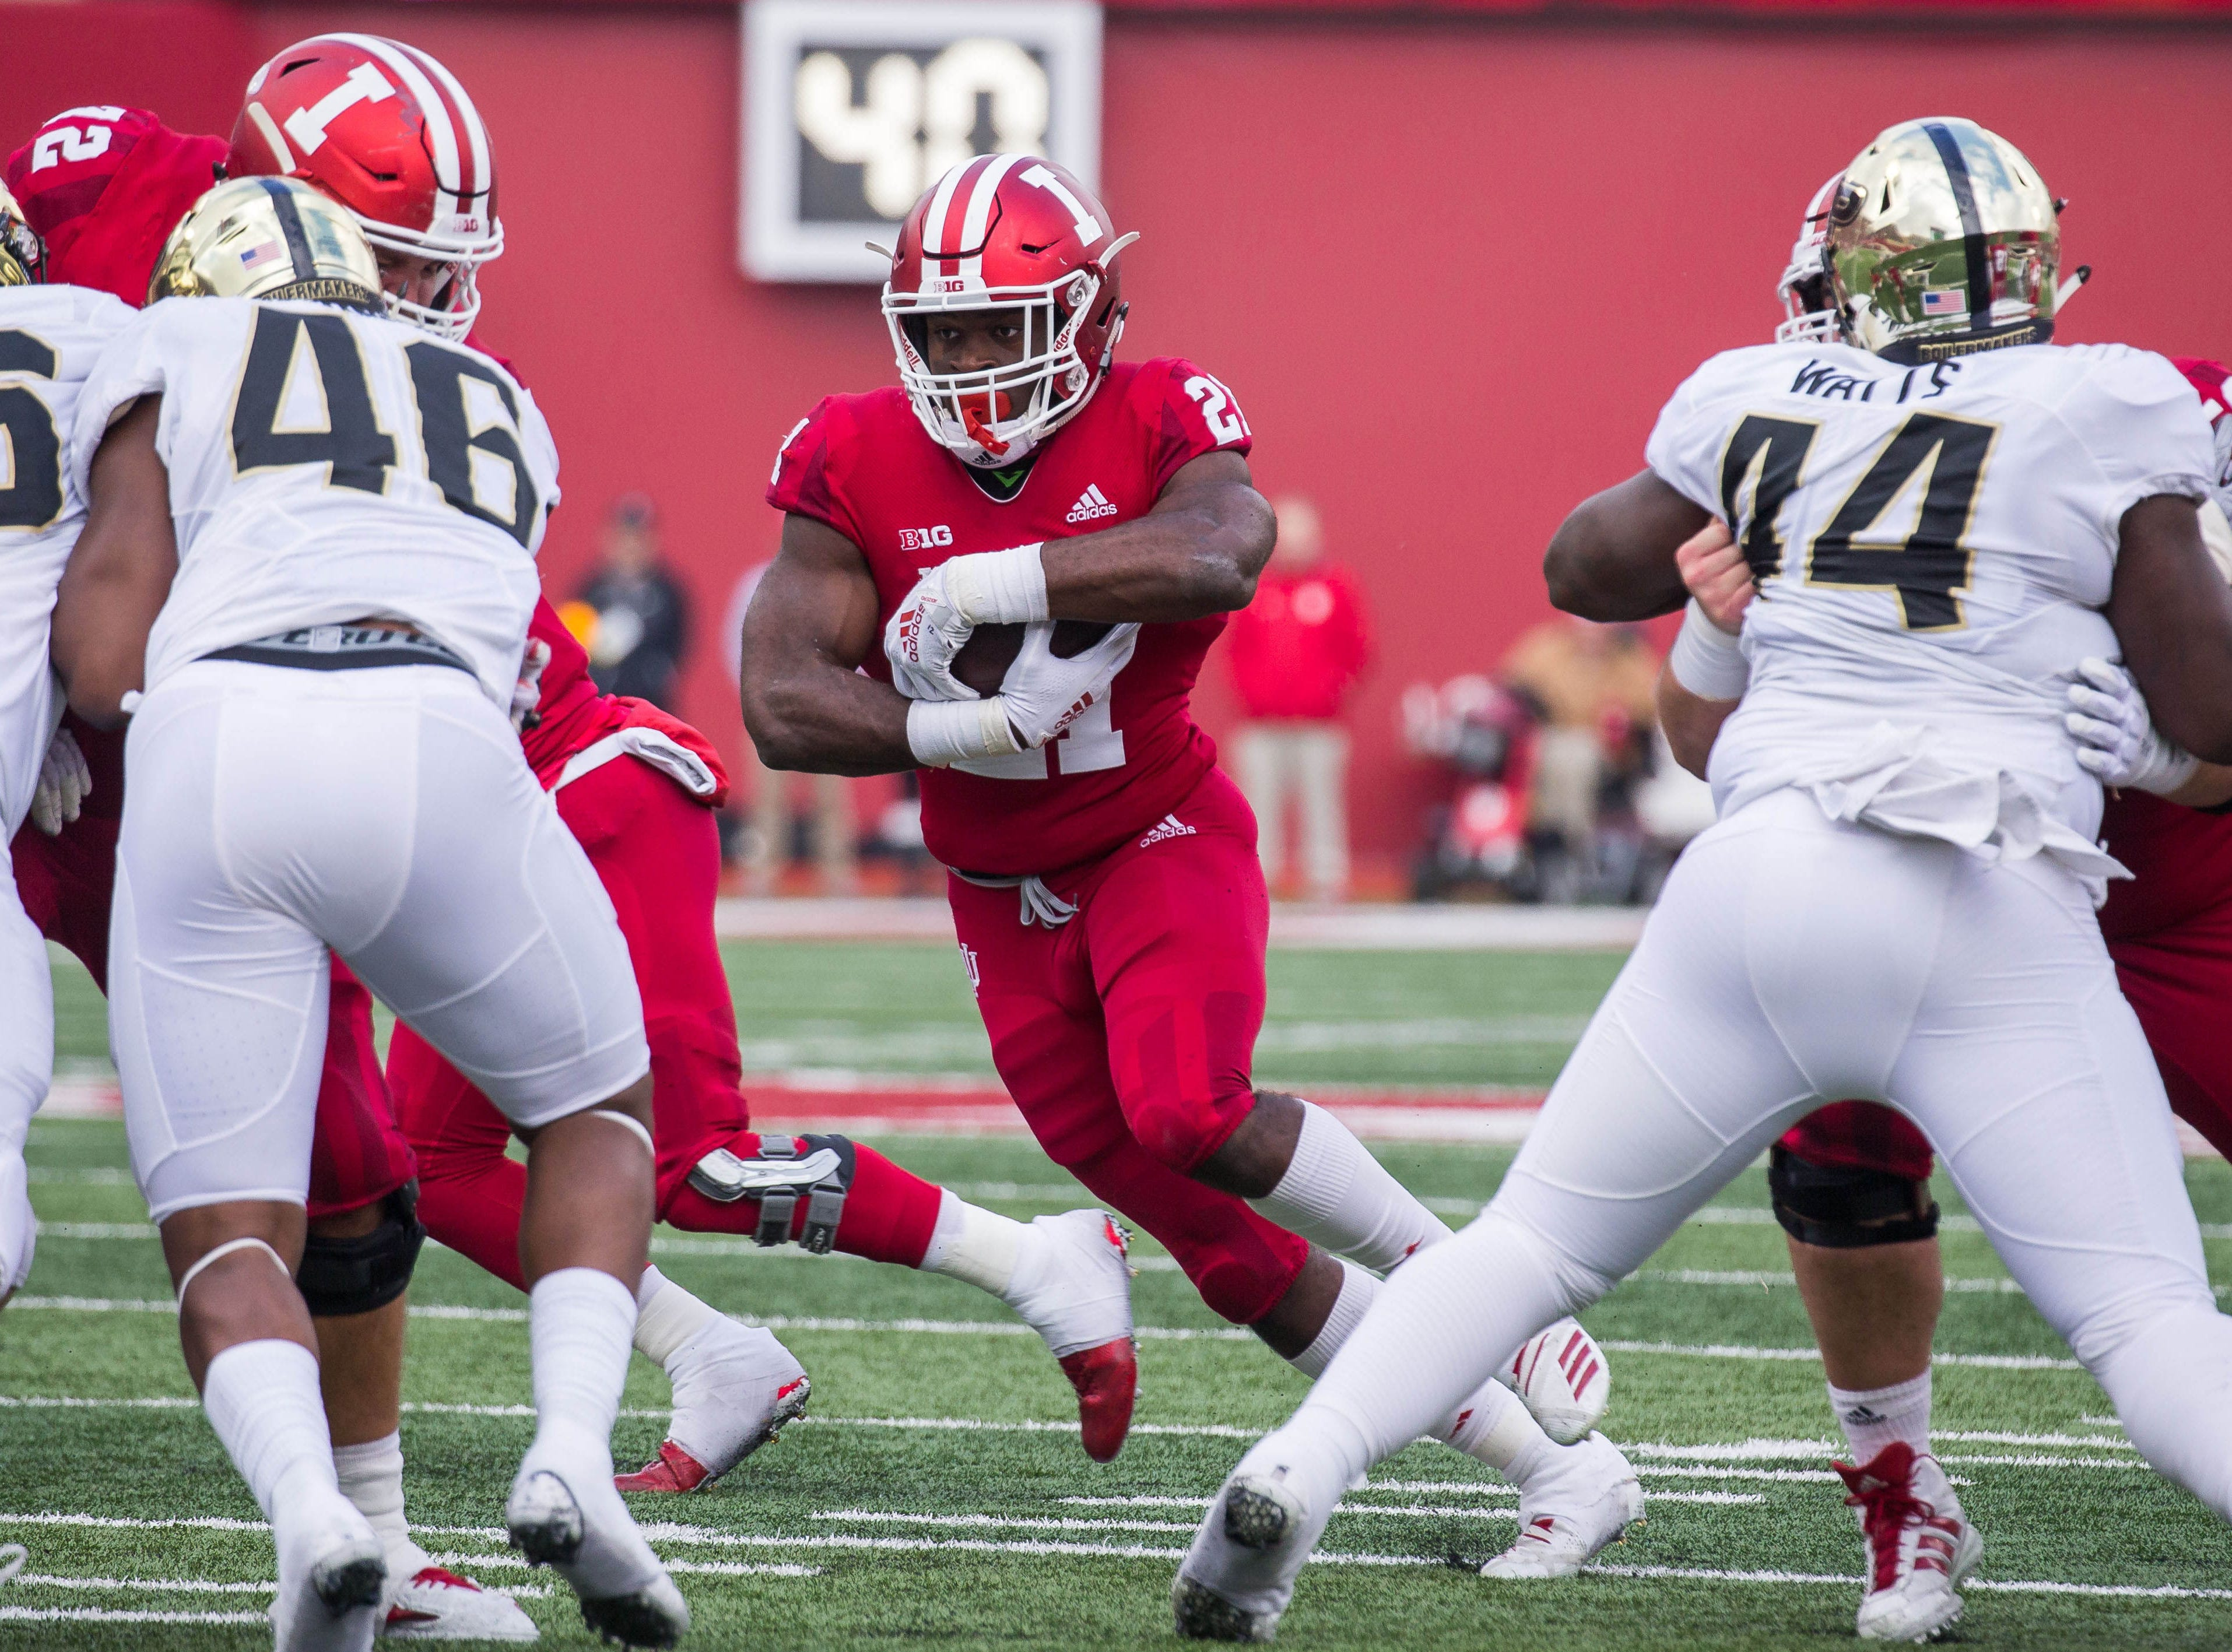 Indiana Hoosiers running back Stevie Scott (21) runs the ball in the first quarter against the Purdue Boilermakers at Memorial Stadium.